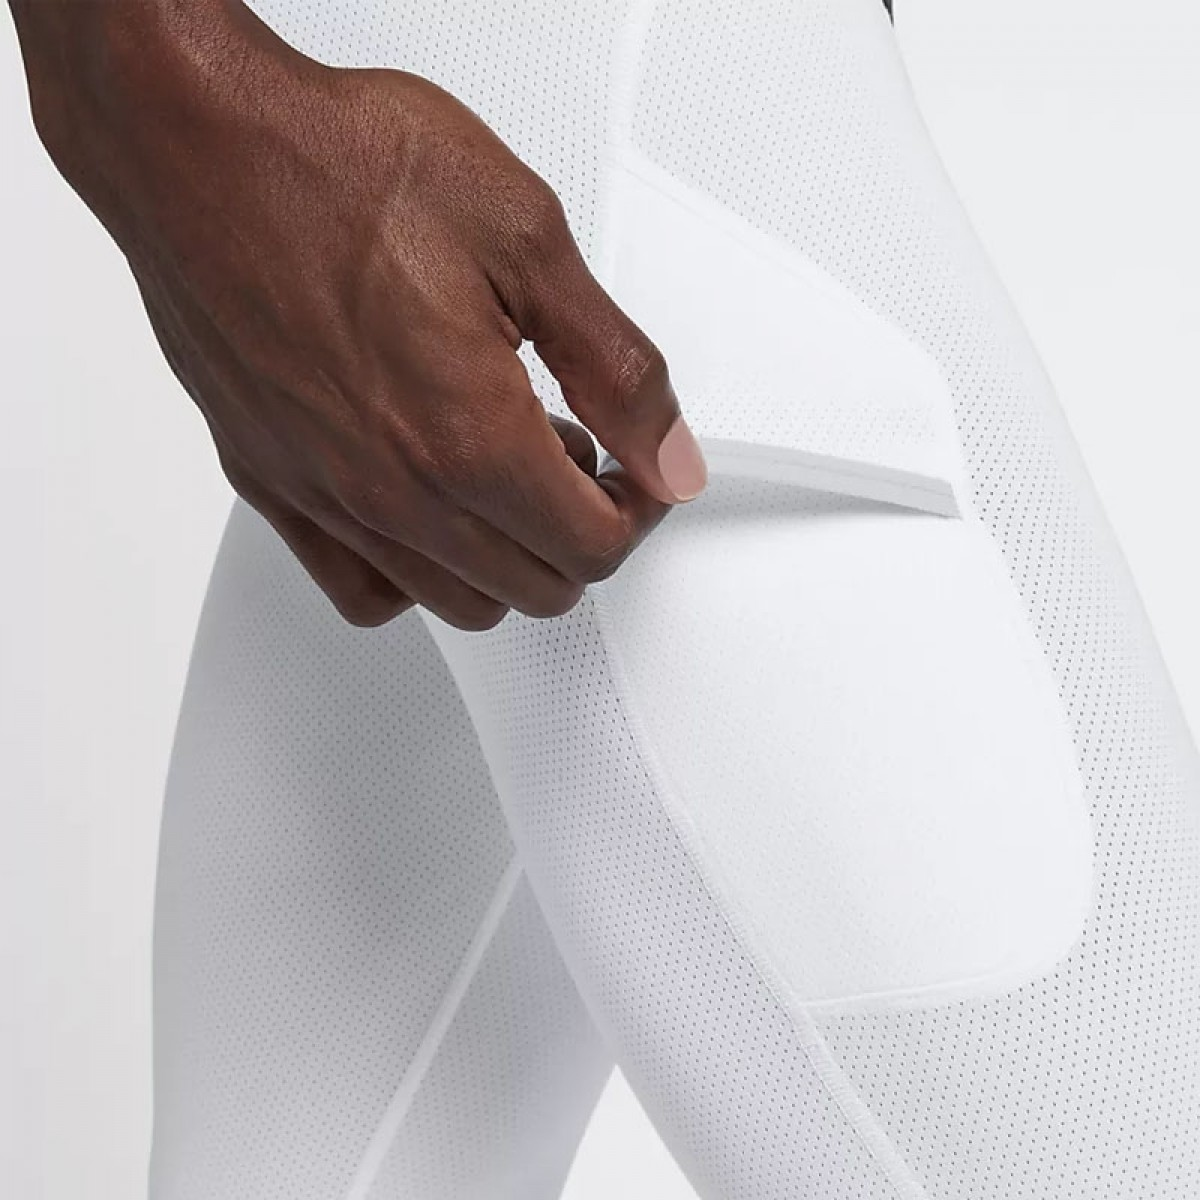 Nike Pro Dri-FIT Tight 3/4 'White' 925821-100